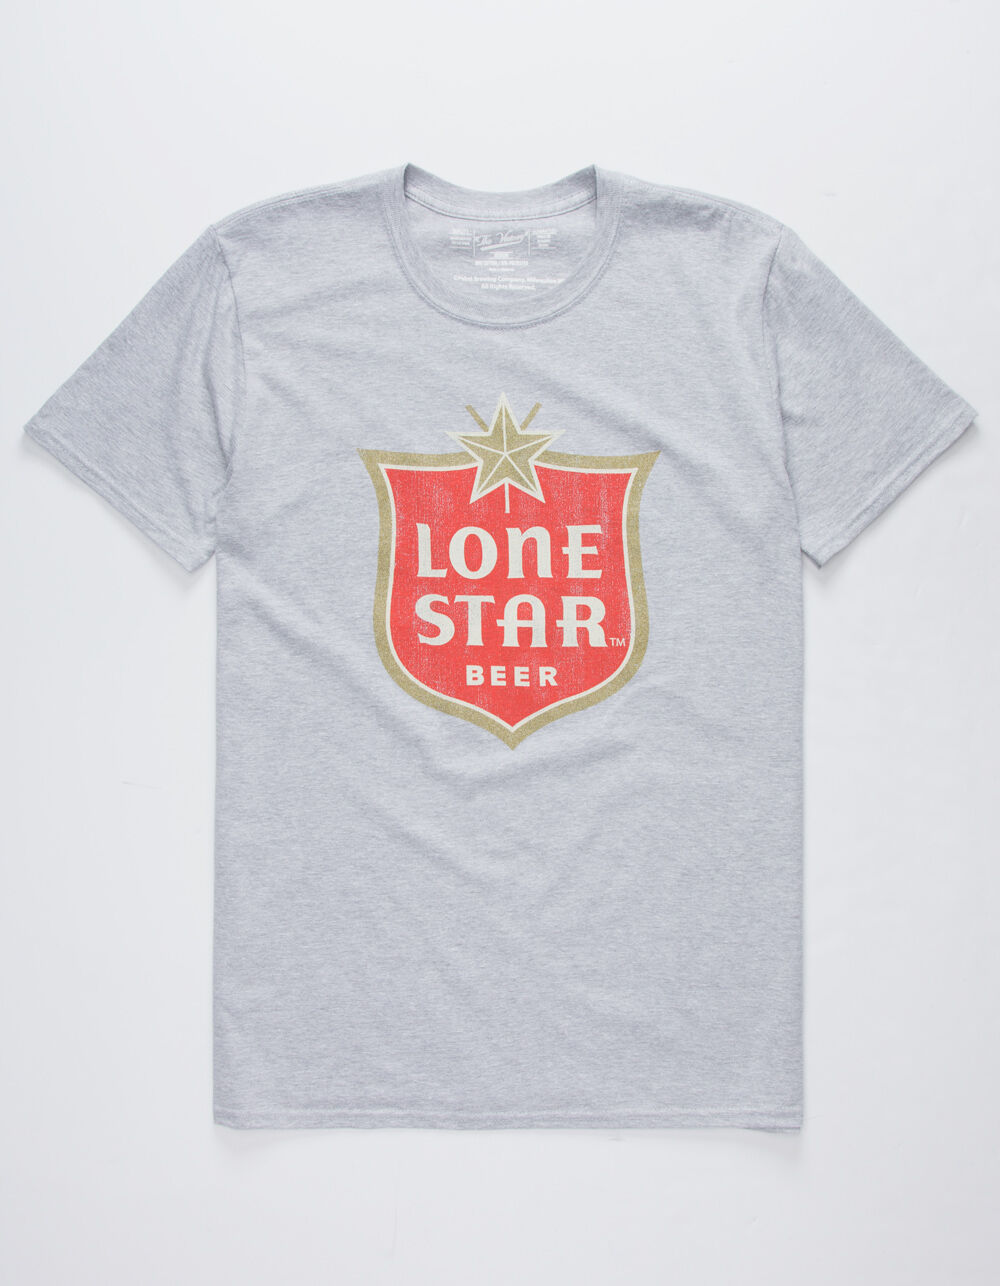 Image of THE VICTORY LONE STAR BEER T-SHIRT